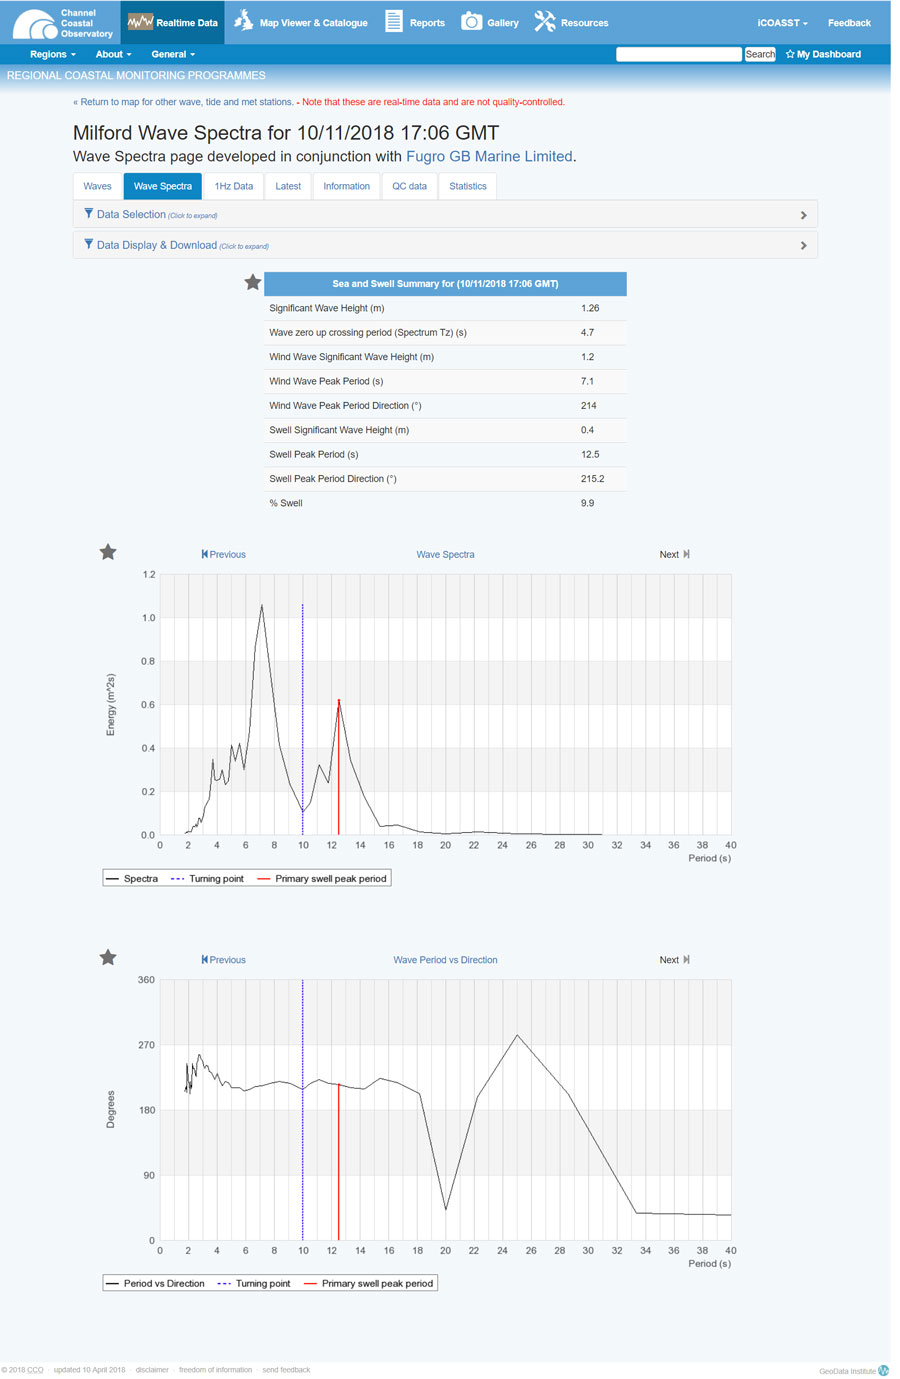 Real time wave data at the CCO website